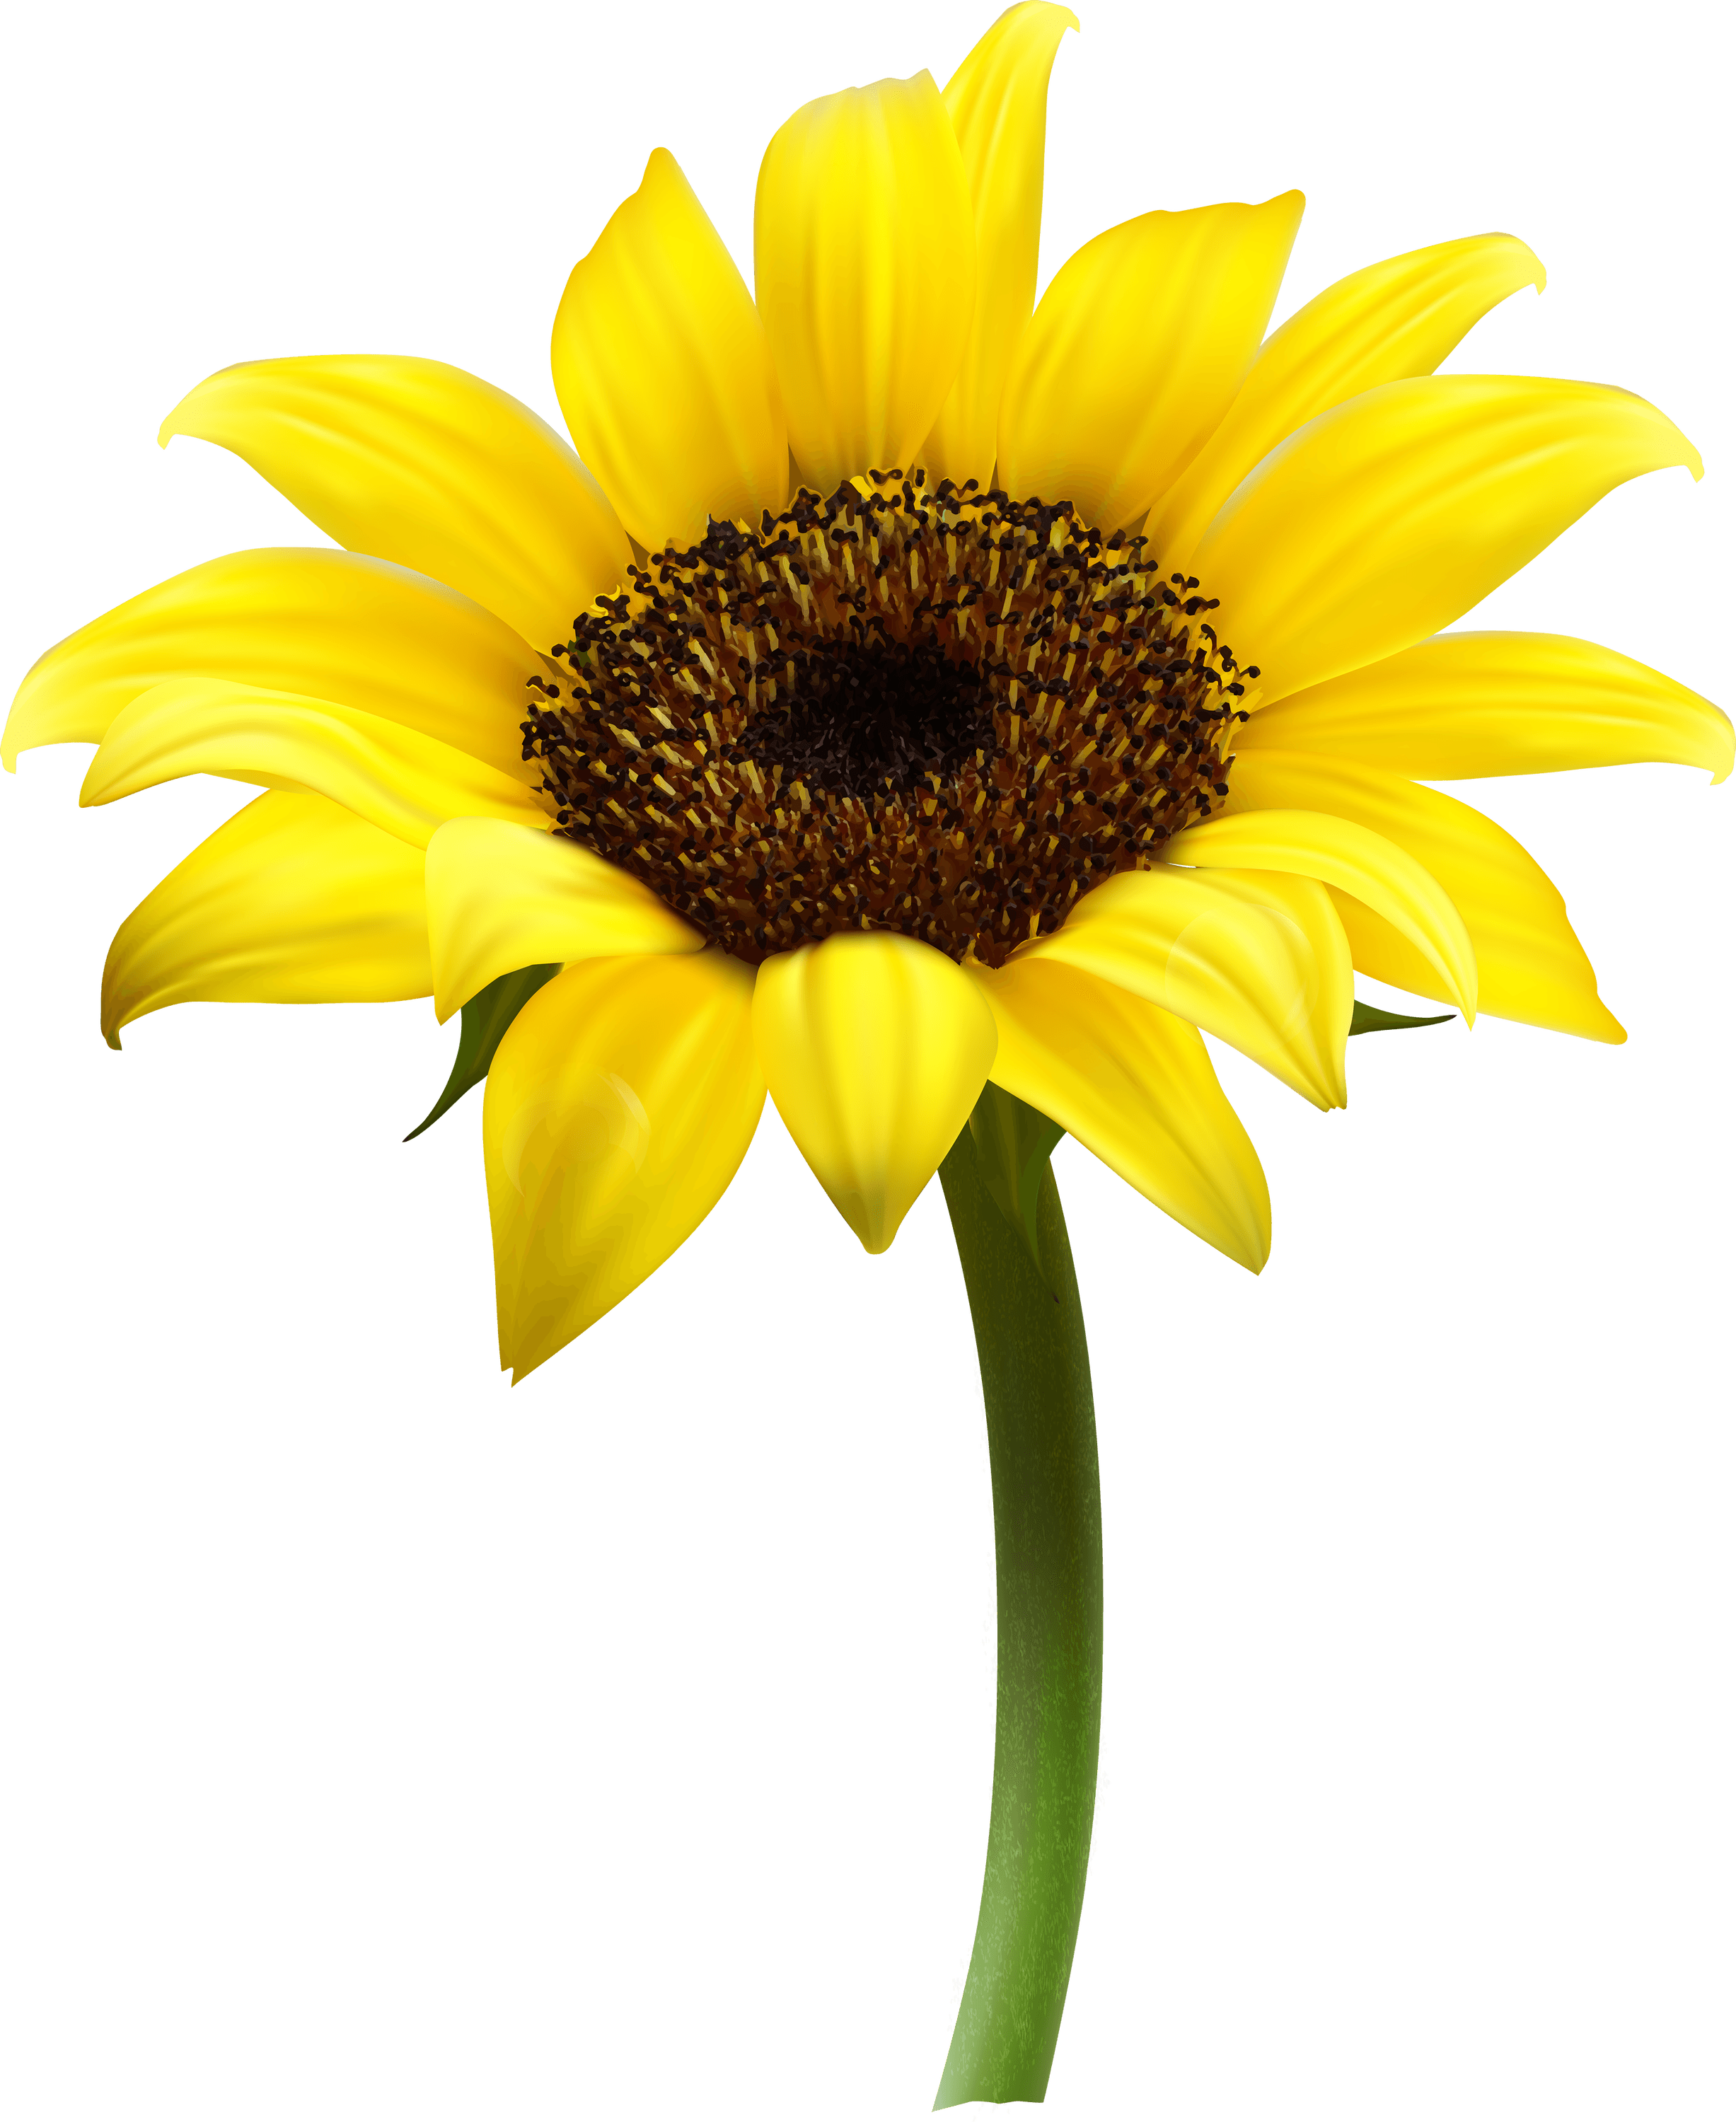 download Sunflowers clipart transparent background. Sunflower single png stickpng